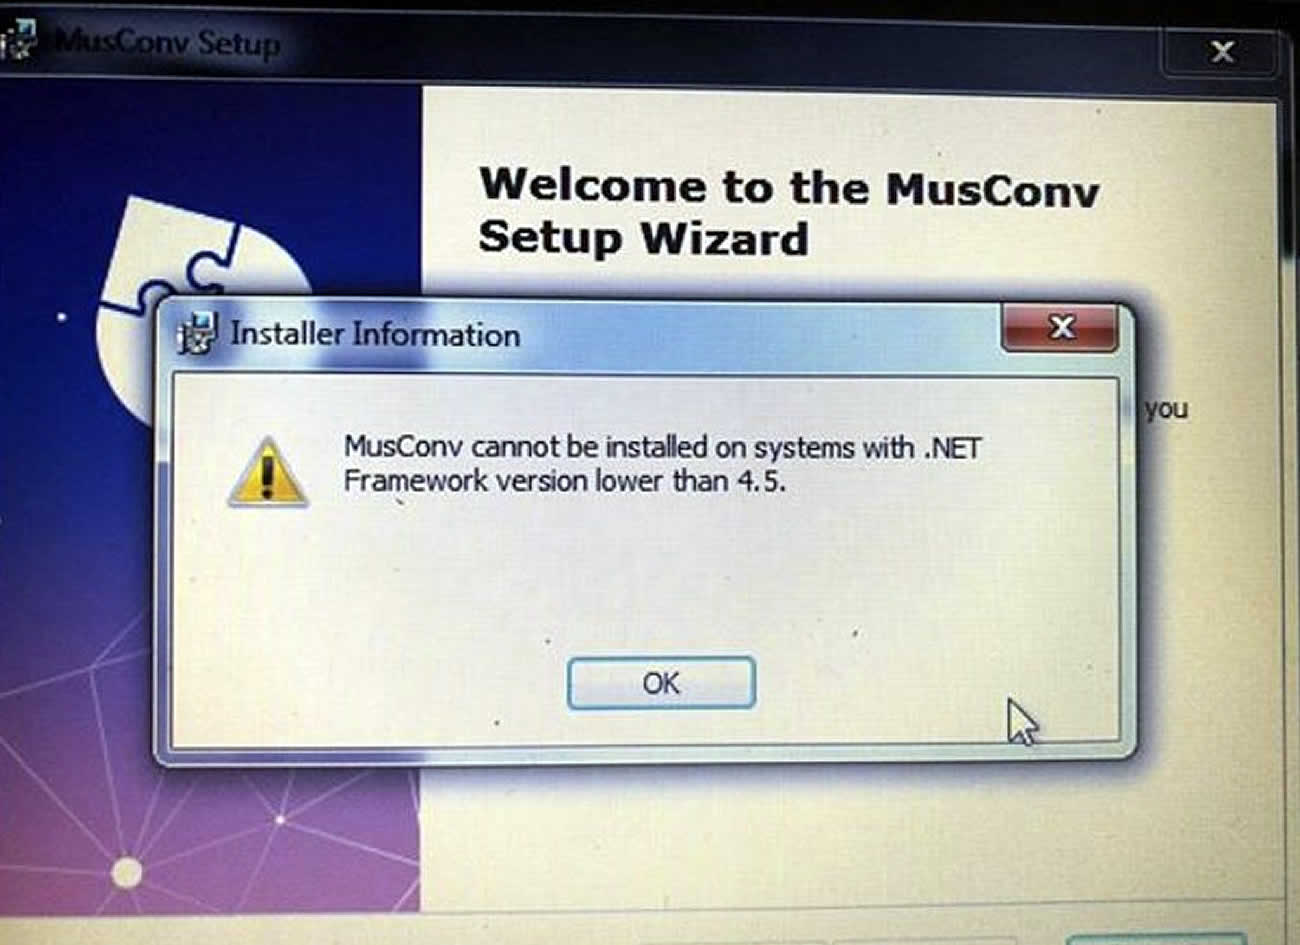 Musconv interface cannot install